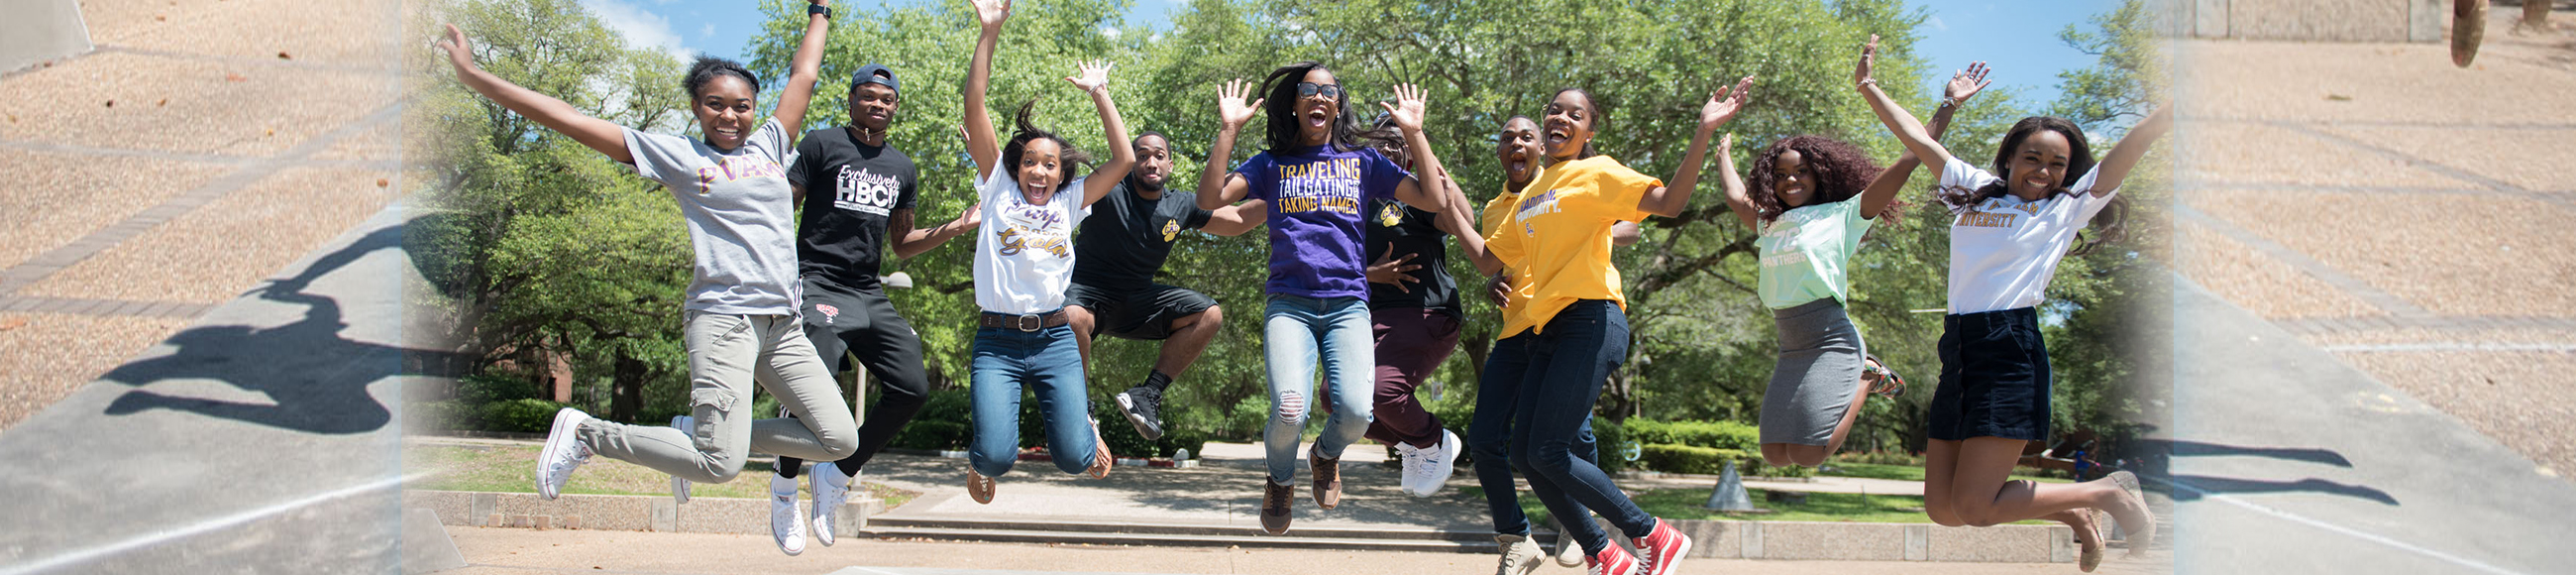 admissions at PVAMU banner